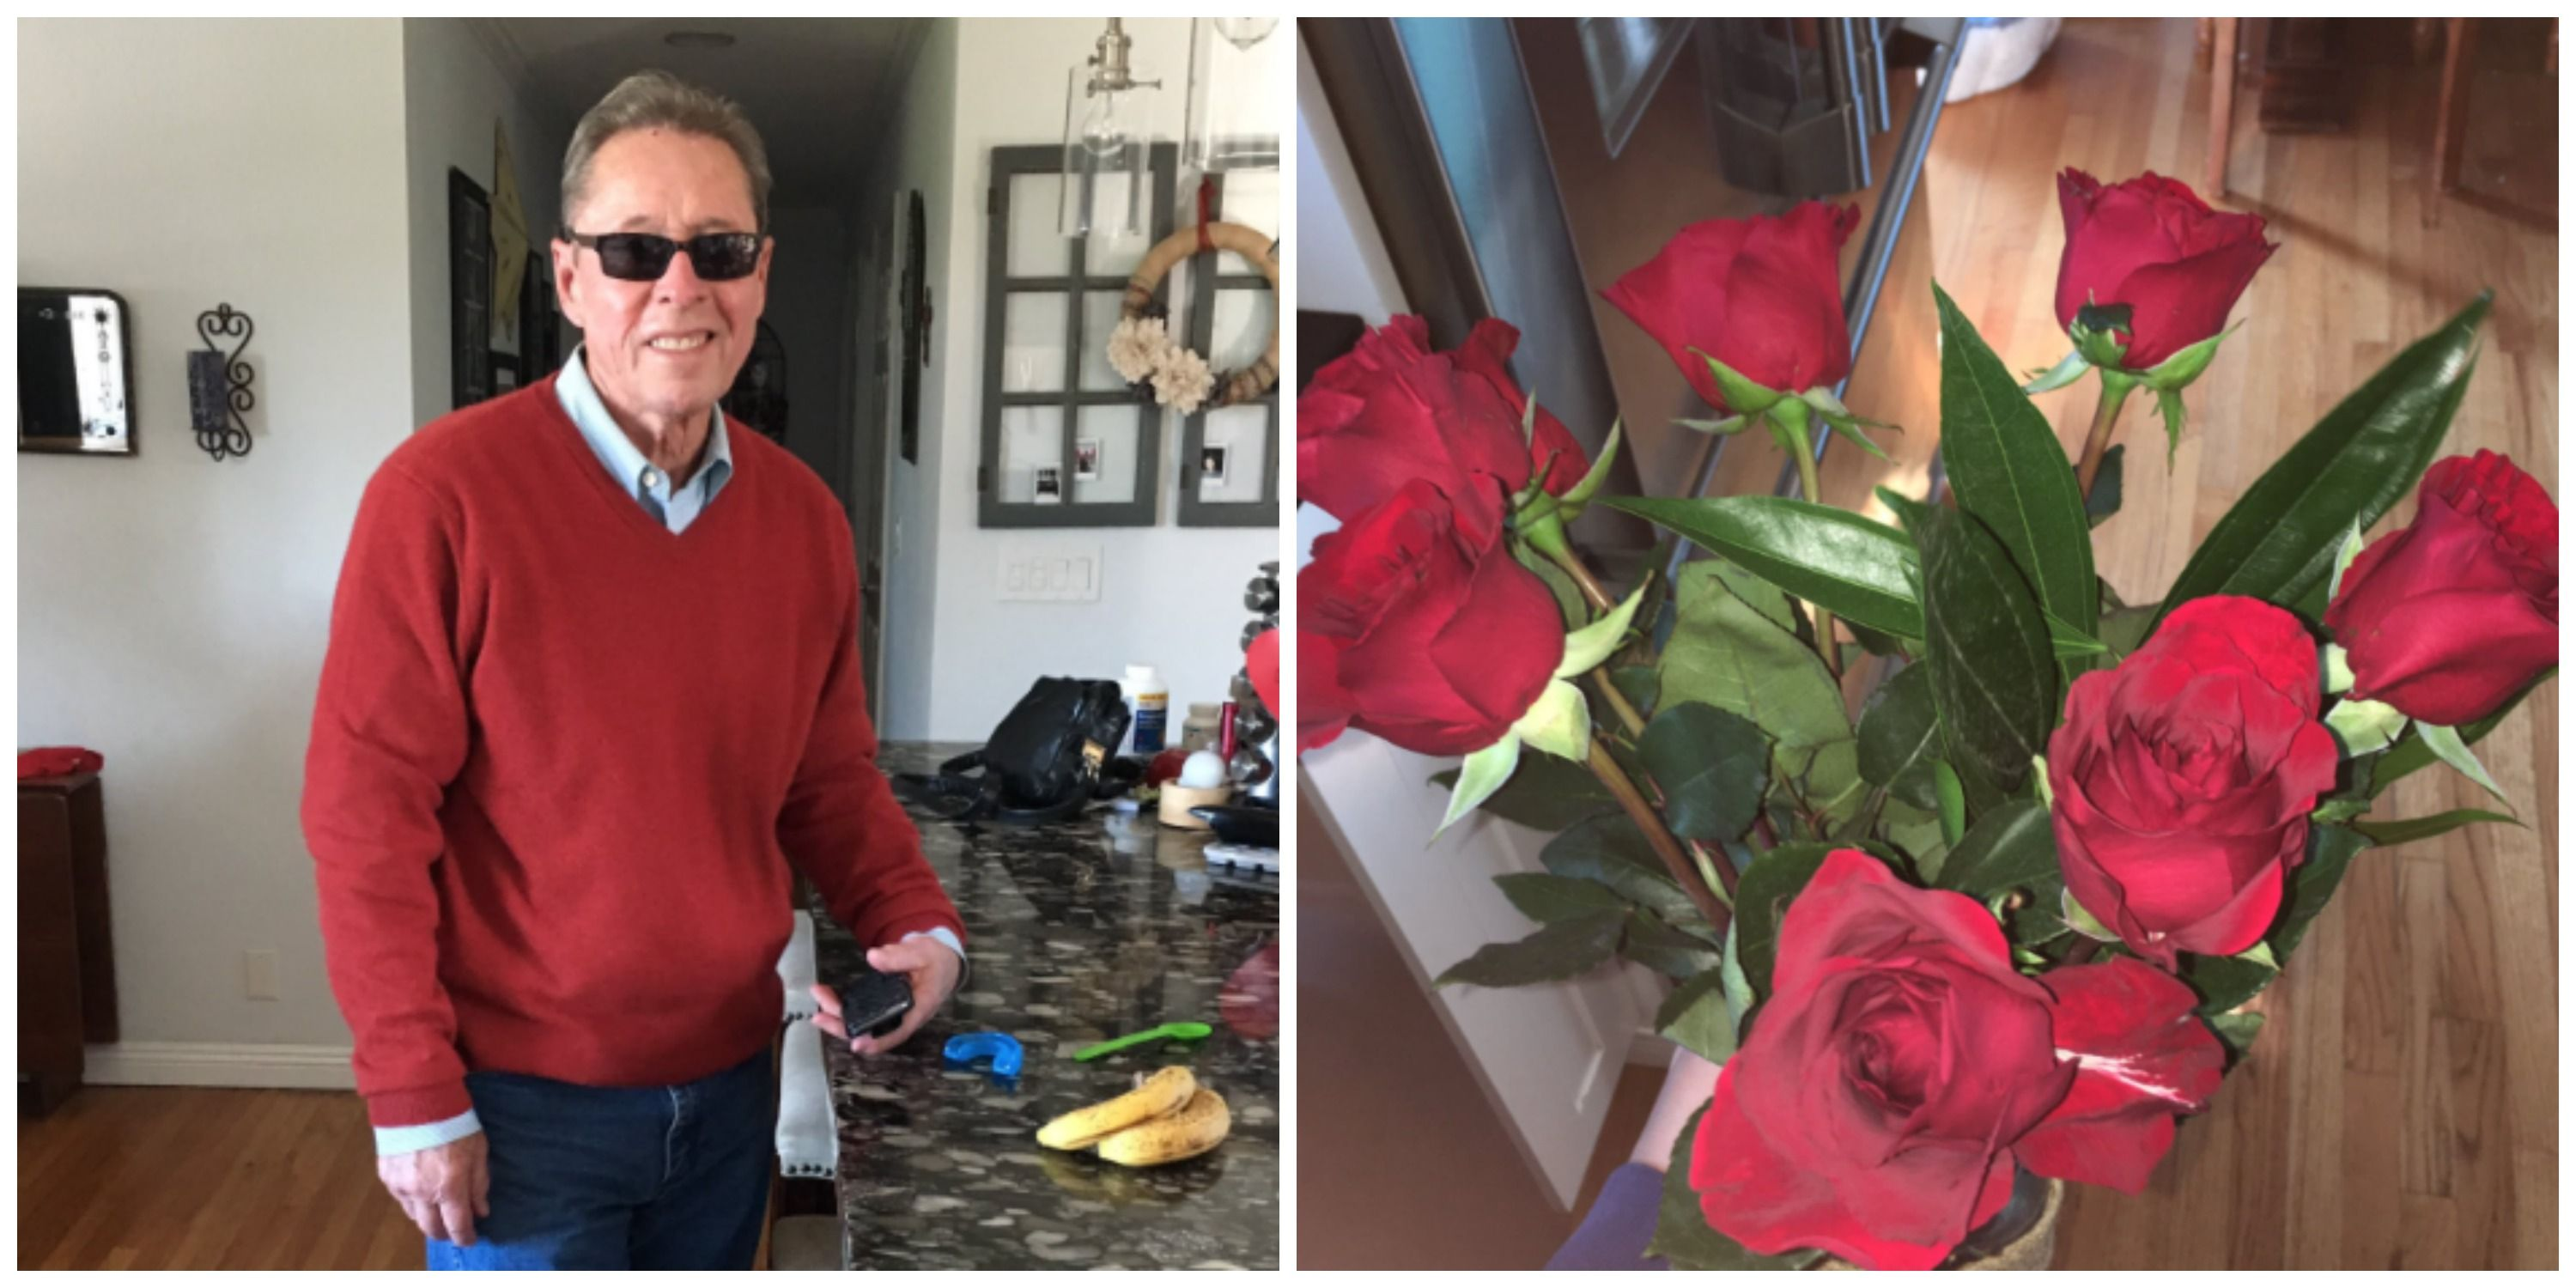 Grandpa Stood Up On Date – And People Are Very Upset